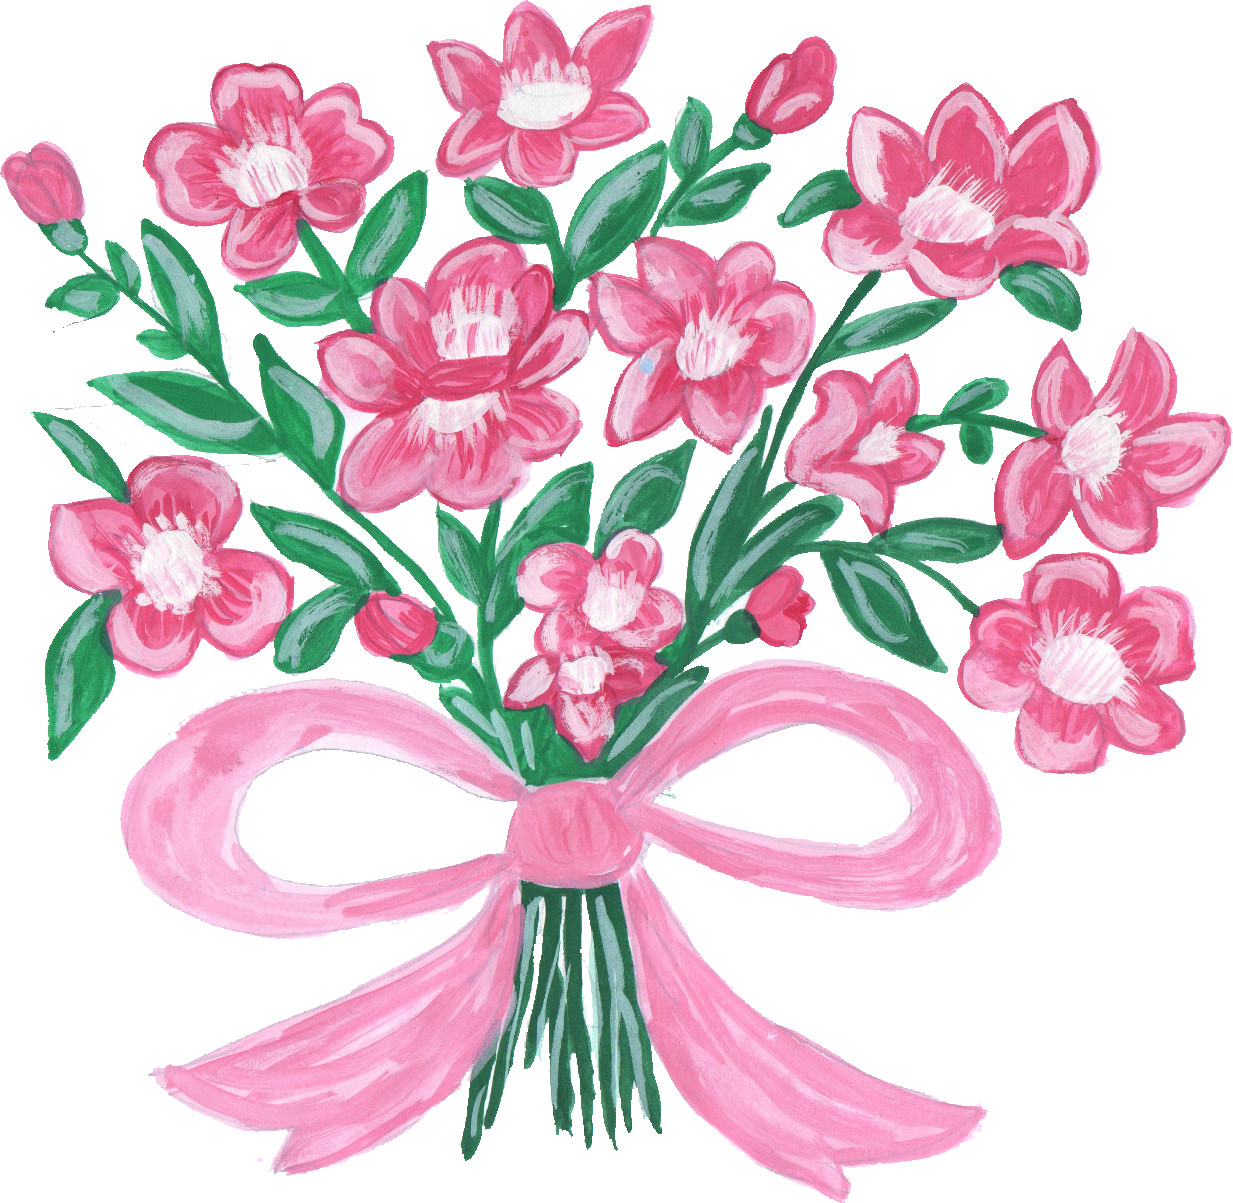 Bouquet Clipart At Getdrawings Free For Personal Use Bouquet